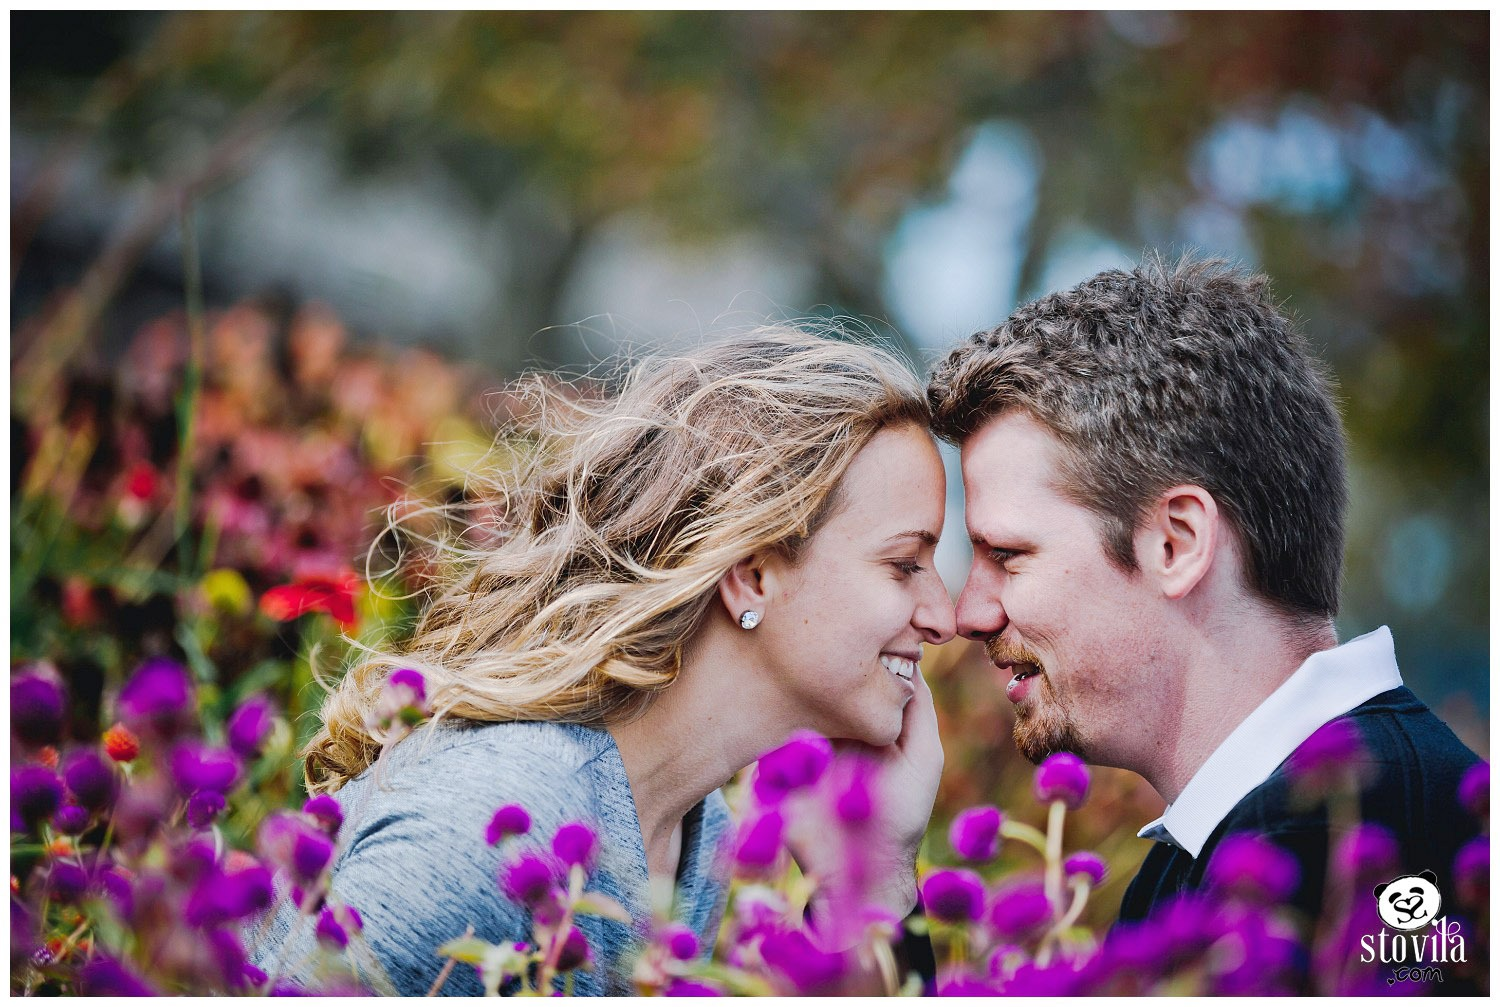 Ashley & Jason Engagement Session | Boston & NH Wedding Photographers - STOVILA // Modern Professional Affordable 3